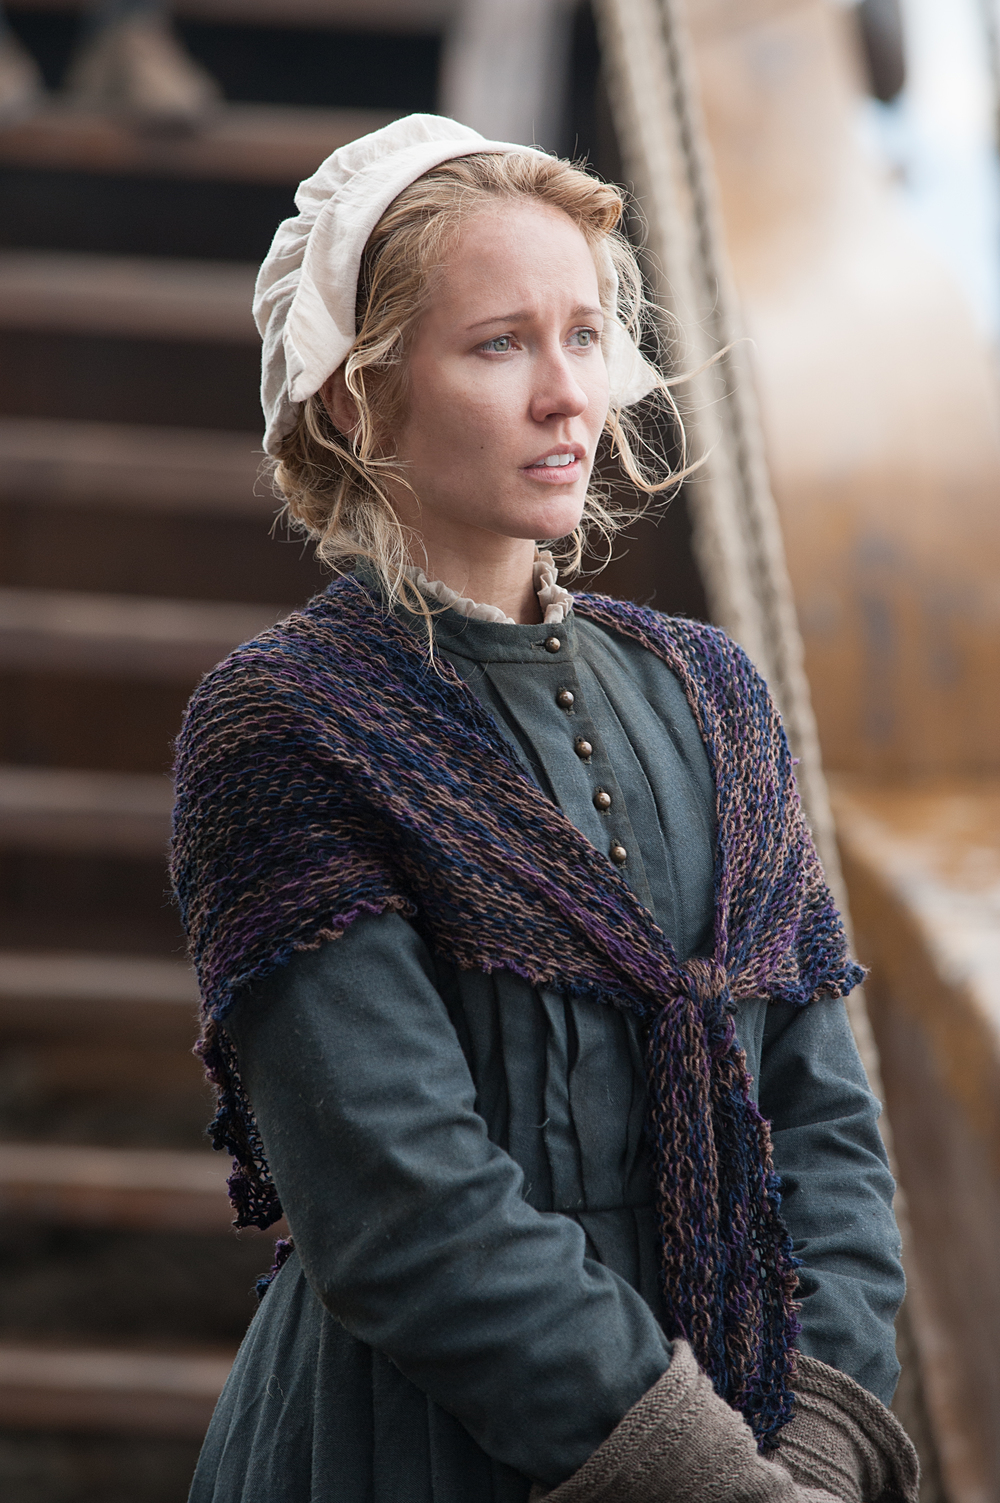 """Anna Camp as Dorothy Bradford in National Geographic Channel's two-night movie event """"Saints & Strangers,"""" premiering Nov. 22-23, 9/8c.  Dorothy Bradford is the wife of William Bradford. She is still haunted by their decision to leave their 3-year-old son behind for the journey to the New World. (photo credit:  National Geographic Channels/David Bloomer)"""